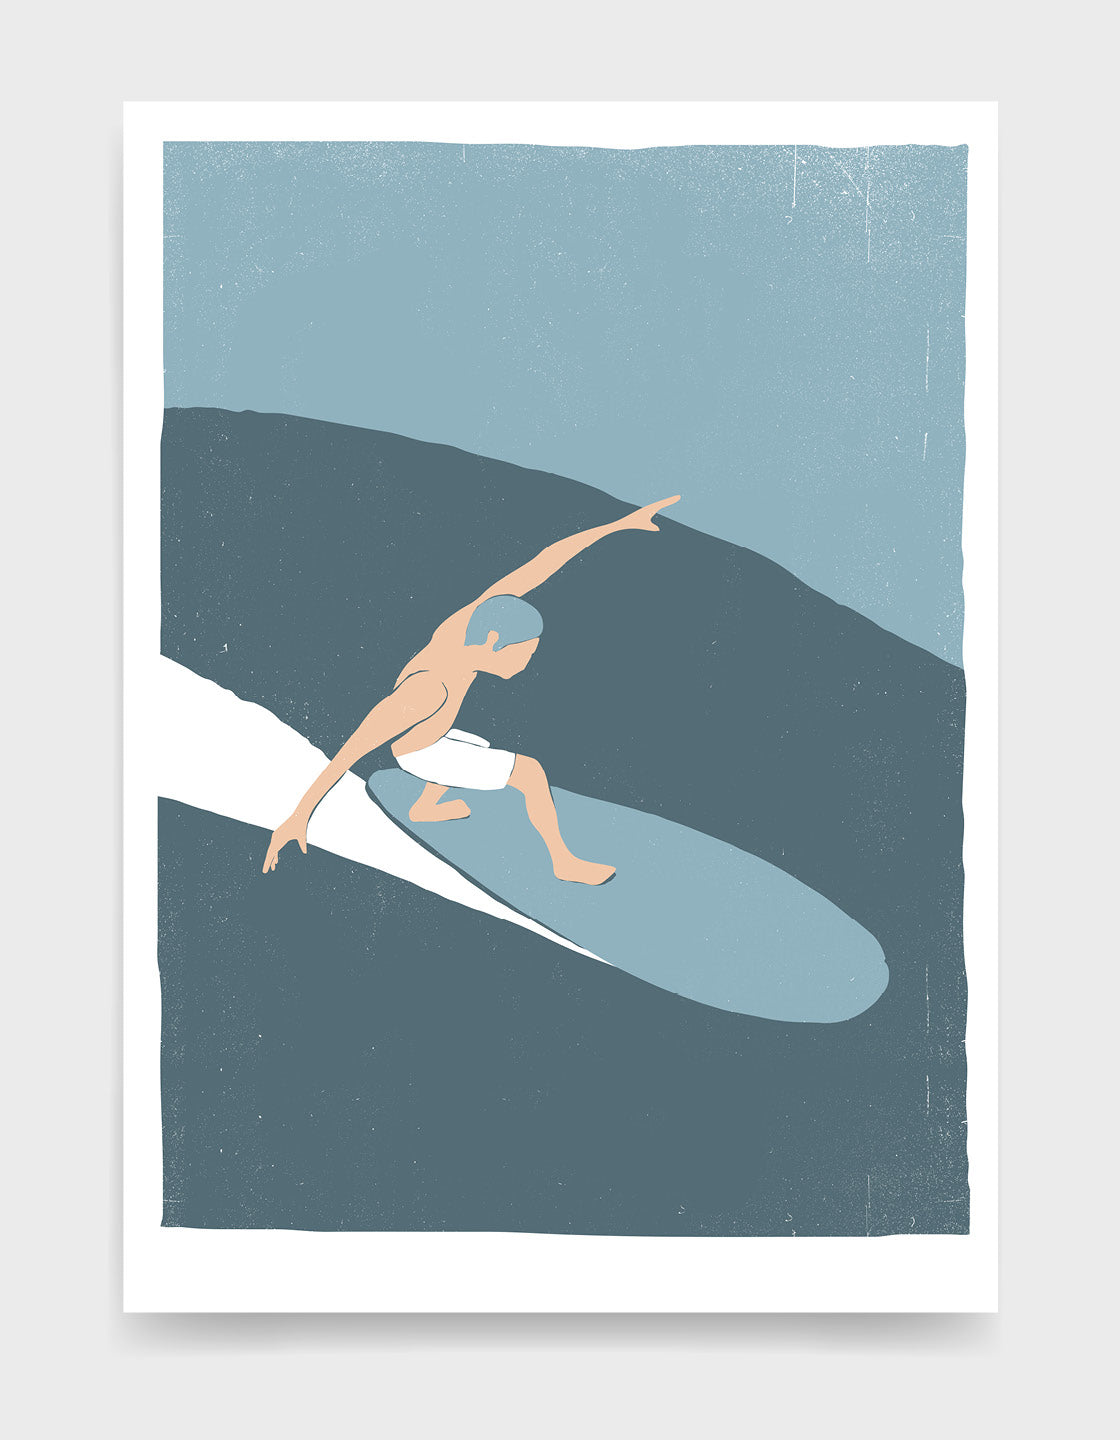 retro screenprint style poster depicting a white man in white shorts riding a wave on a surf board with his arms out to the side to balance